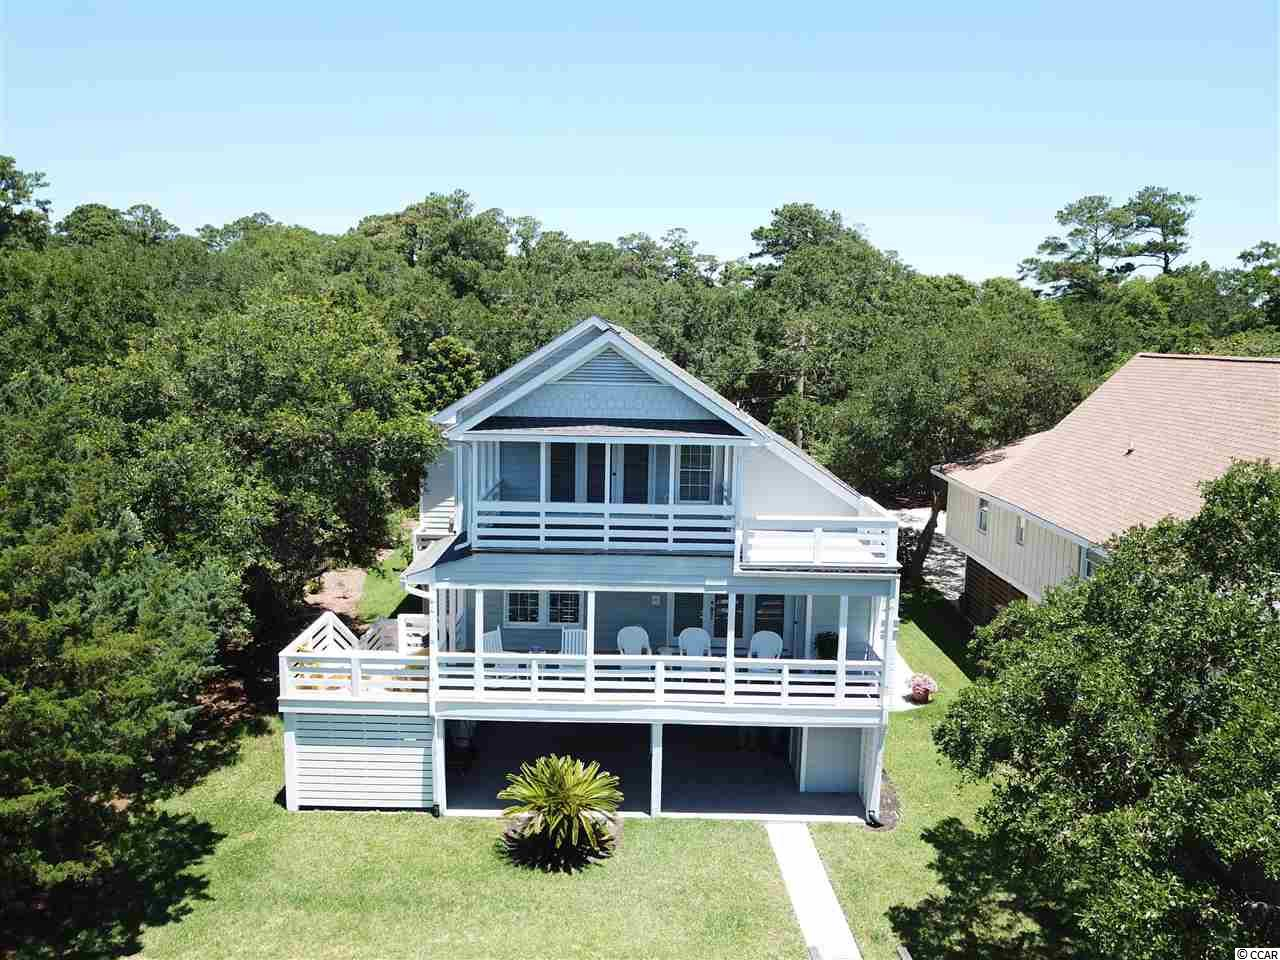 "What better address to call home other than 100 Comfort Lane! Breathtaking views across the Pawley Island Marsh, straight to the sand drenched Beach front at Pawleys point and the Atlantic Ocean. Trust me when I say this view will never get old! Sit on either of the two creek front decks and enjoy the almost constant breezes with your morning coffee or your afternoon beverage of choice. Better yet, walk out the upstairs bedroom and enjoy the beautiful sunrises, then try choosing between the main level porch, or the creek front dock for your afternoon gathering with friends and neighbors. For the sun worshipers you will enjoy the sun decks off both levels. This home is so unique in so many ways I really don't know where to start. All four bedrooms are essentially masters, boasting heated tile bathroom flooring, even the half bath. Three of the bedrooms have separate bathtubs and showers, with the fourth a tub / shower combo. All bedrooms and baths are very spacious with double sink vanities. For the men in the family each bedroom has large his and her closets! Attention to details show throughout this stately home, starting with the four locally produced stain glass masterpieces. Wainscoting, shiplap, and bead board throughout the structure with the front decks sporting haint blue bead board ceilings  Nice size laundry room and a house wide central vacuum. Large walk through storage area between the upstairs bedrooms with door entries from both sides. Another huge amenity is the three bay parking area that could easily park four or five cars and surrounds a 16'7""x15'5"" ground level workshop / man cave with a half bath and air conditioning. From the parking area there is a large motorized dumb waiter (equipped with a land line phone) capable of carrying a truck load of items to the main level deck. No words can describe this home properly so I encourage you to call today for a personal viewing, or ask your Real Estate professional to schedule a showing. You'll be impressed.  Please view the virtual tour at the top of the listing page for a more detailed rendering of the structure!"